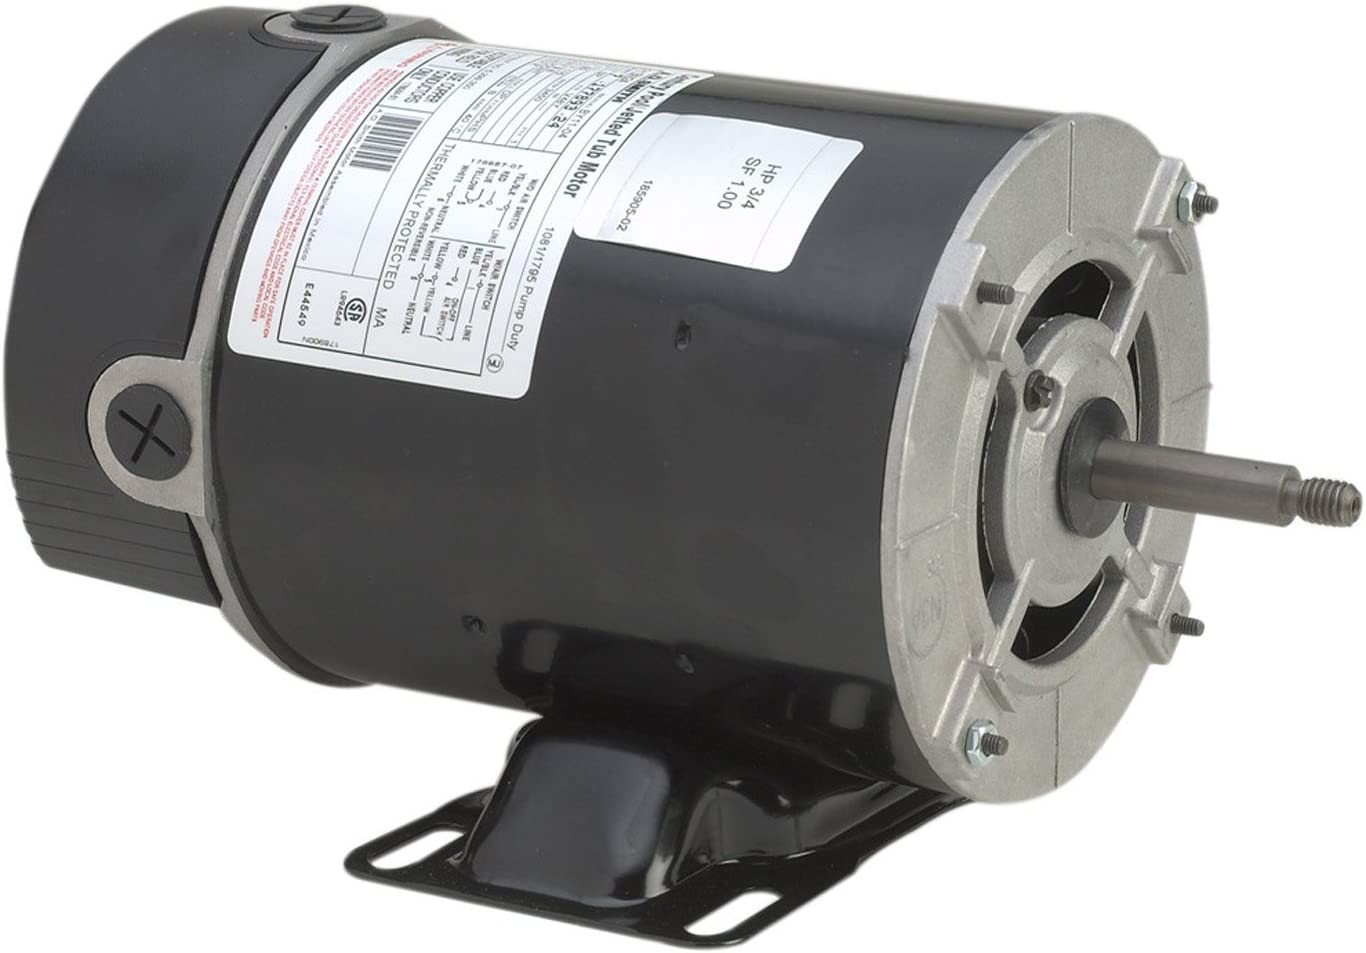 A.O. Smith BN37V1 1 HP - 1/8 HP, 115 Volts, 11.0/2.9 Amps, 1 Service Factor, 48Y Frame, Capacitor Start, ODP Enclosure, Rigid Base Pool Motor